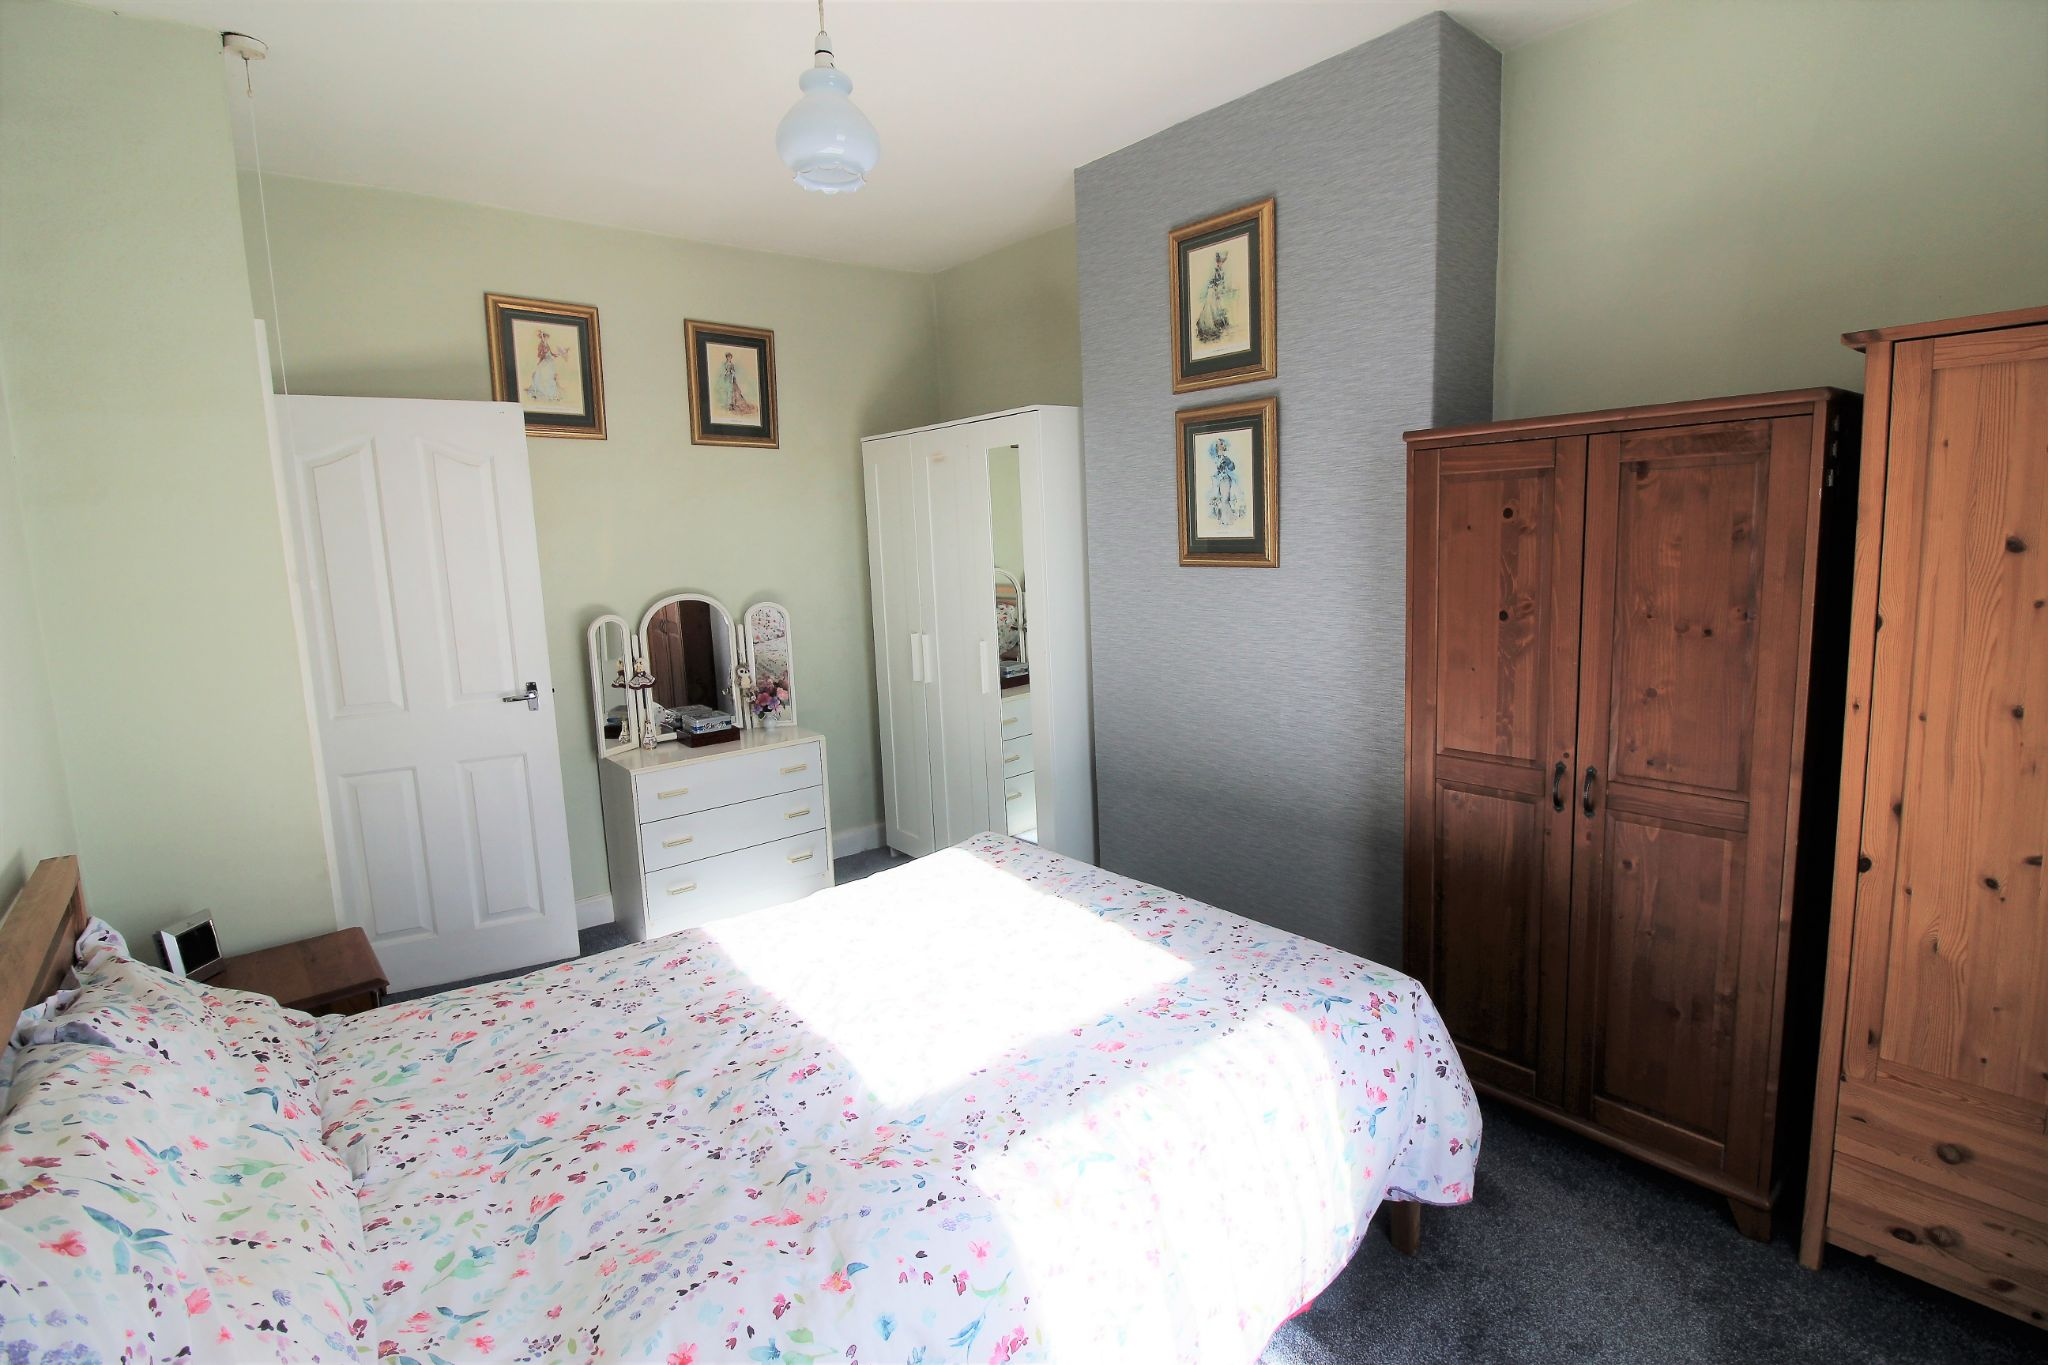 2 bedroom end terraced house For Sale in Brighouse - Bedroom 1